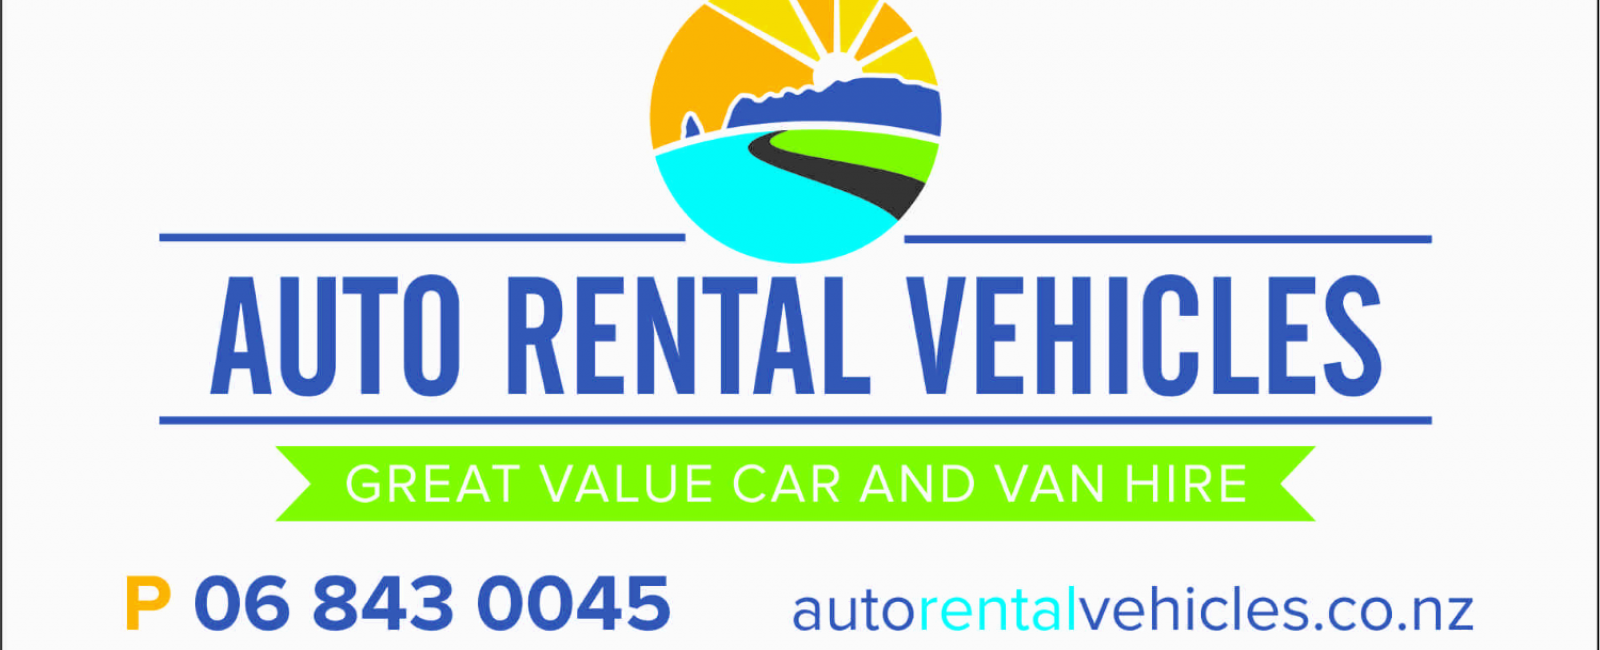 Auto Rental Vehicles